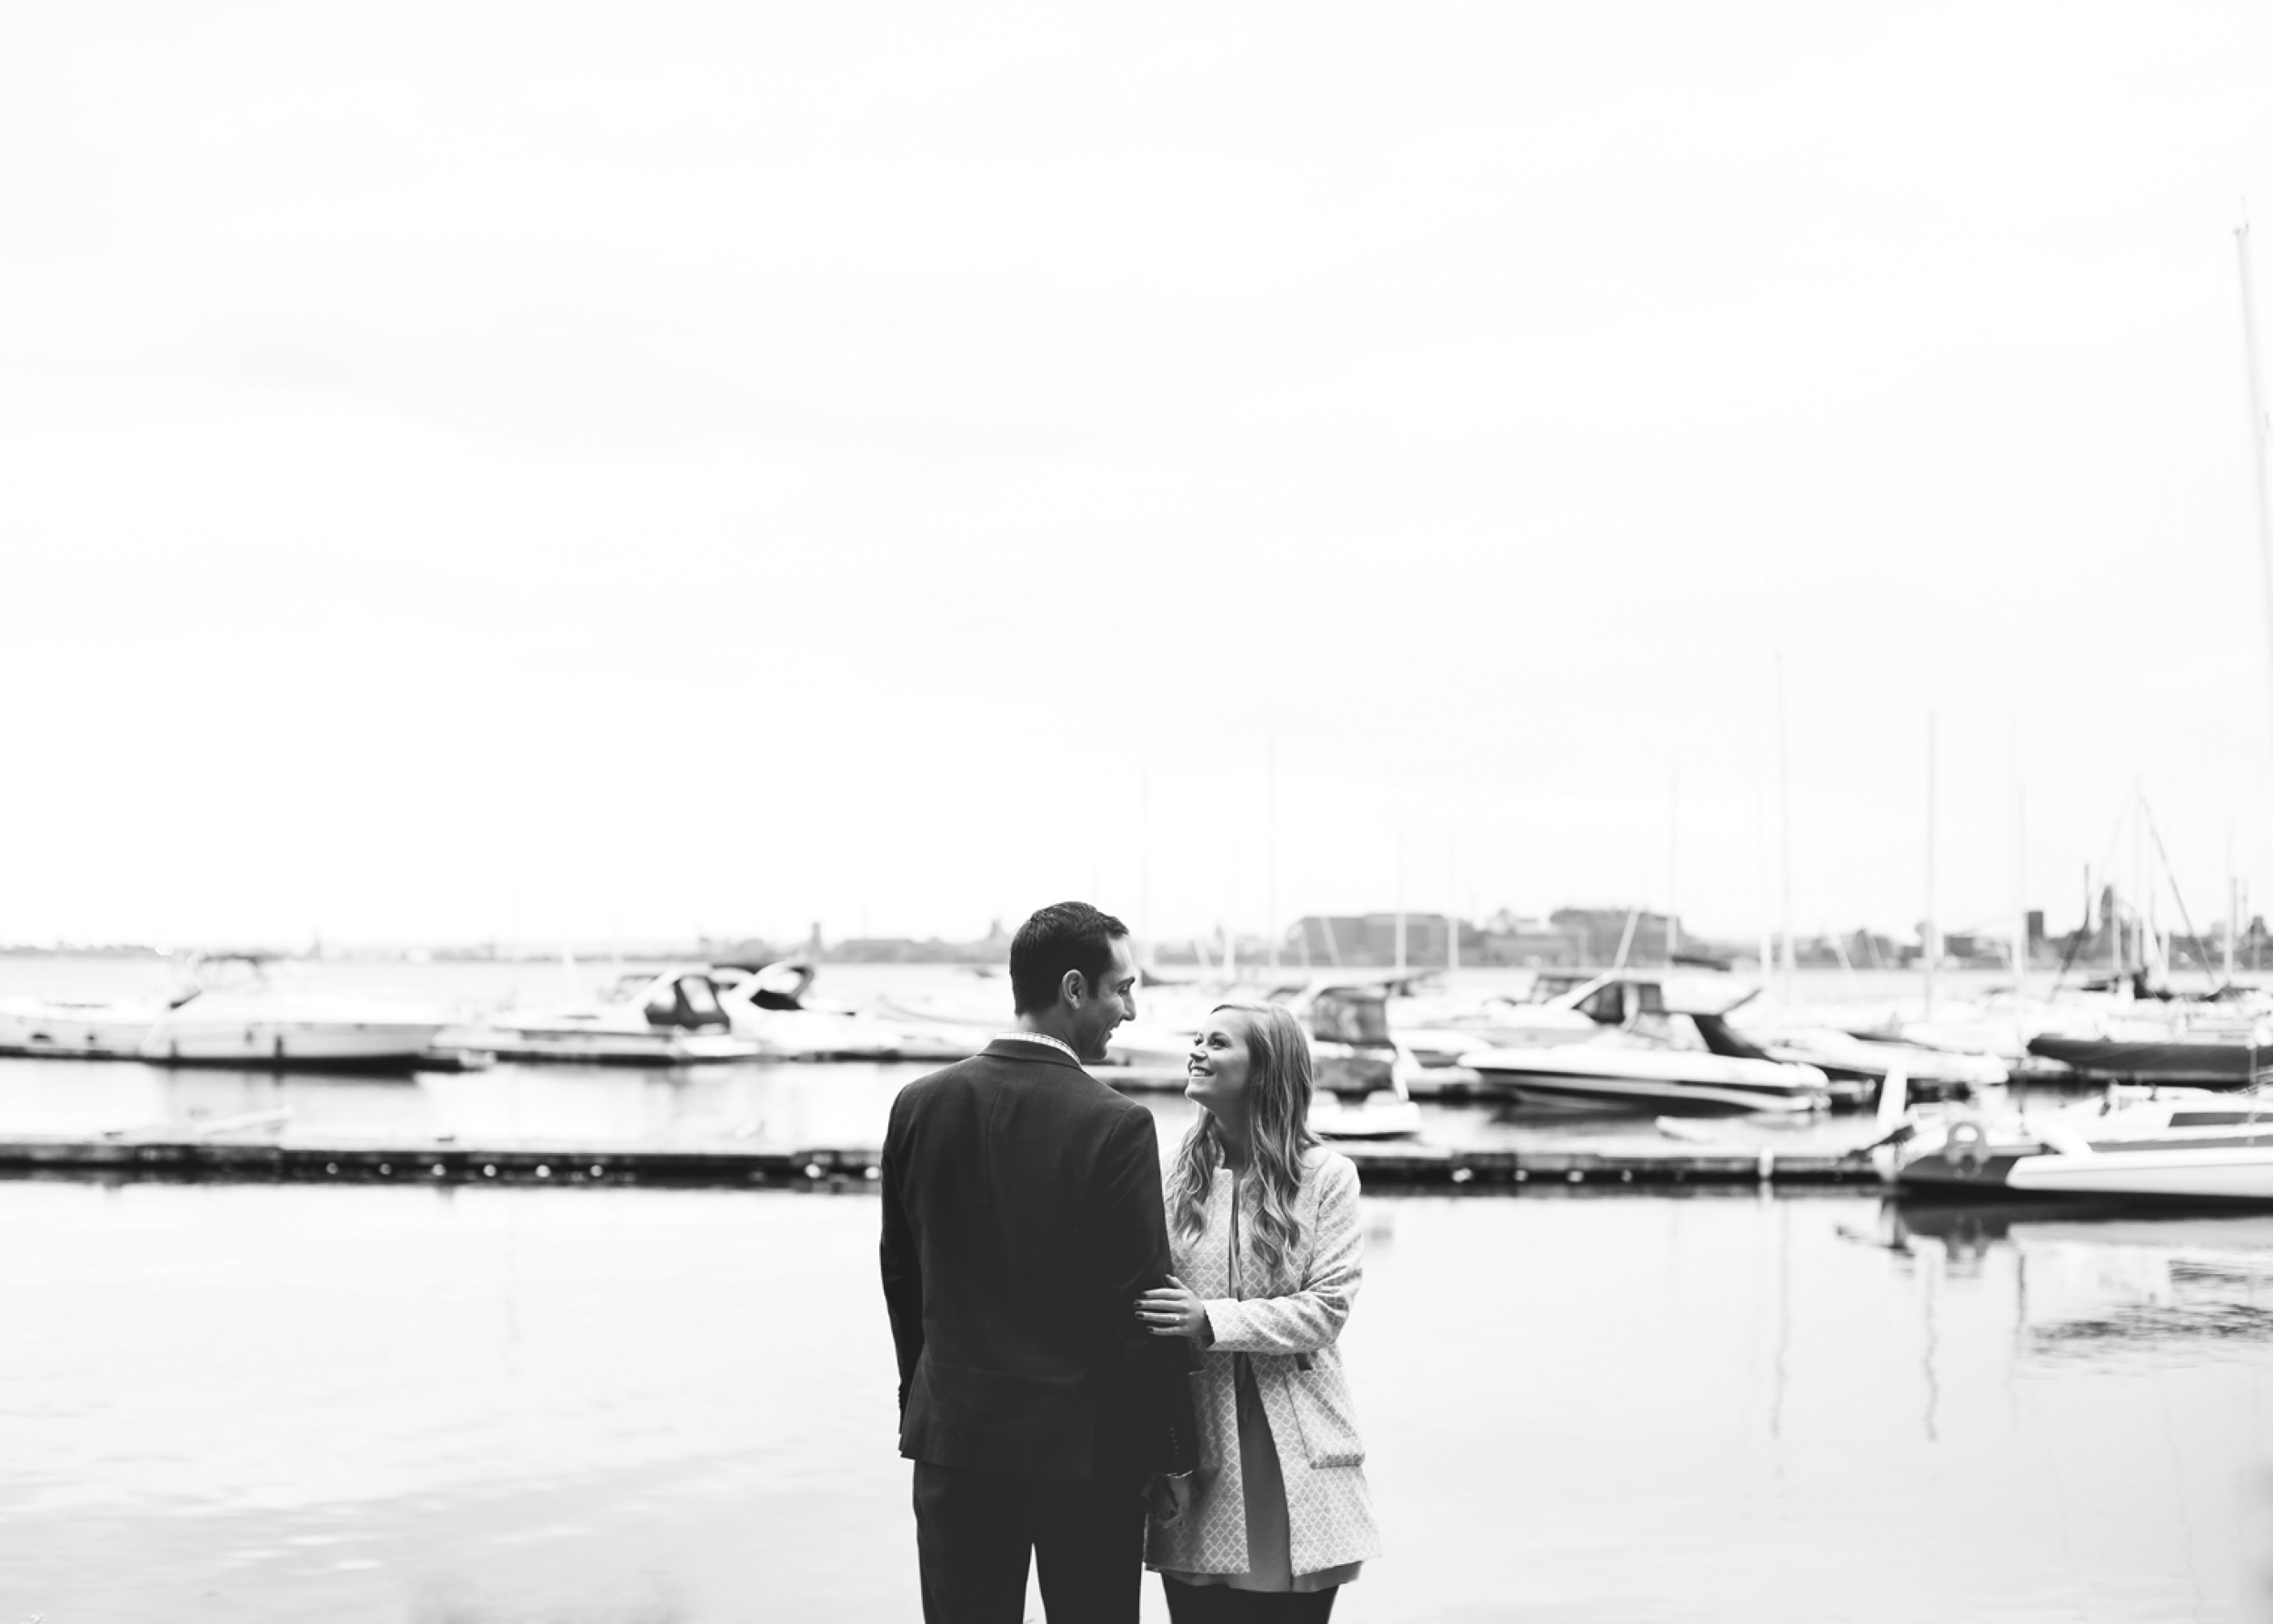 Engagement-Session-Hamilton-Burlington-Oakville-Niagara-Toronto-Wedding-Photographer-Engaged-Photography-Waterfront-Engaged-Golden-Hour-Moments-by-Lauren-Photo-Image-11.png